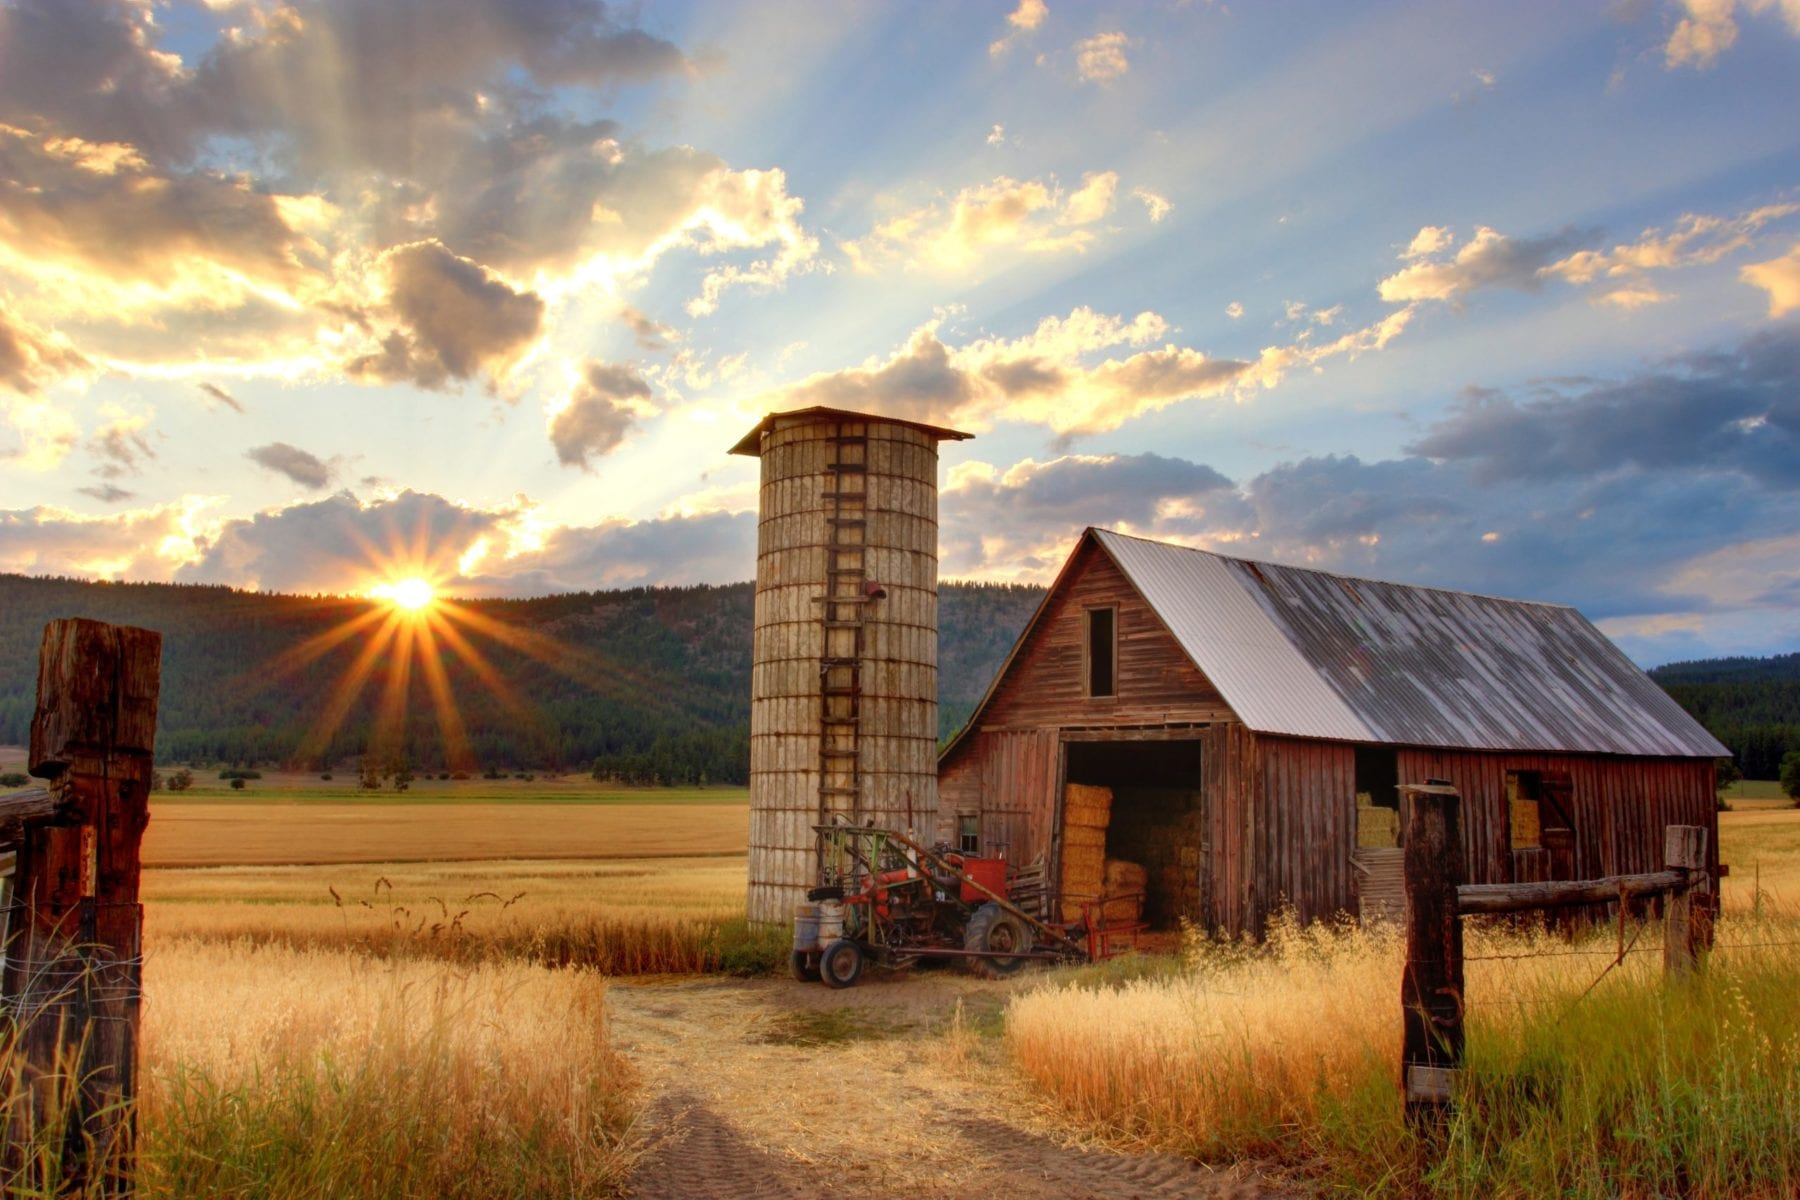 Spend the day on the farm without leaving home